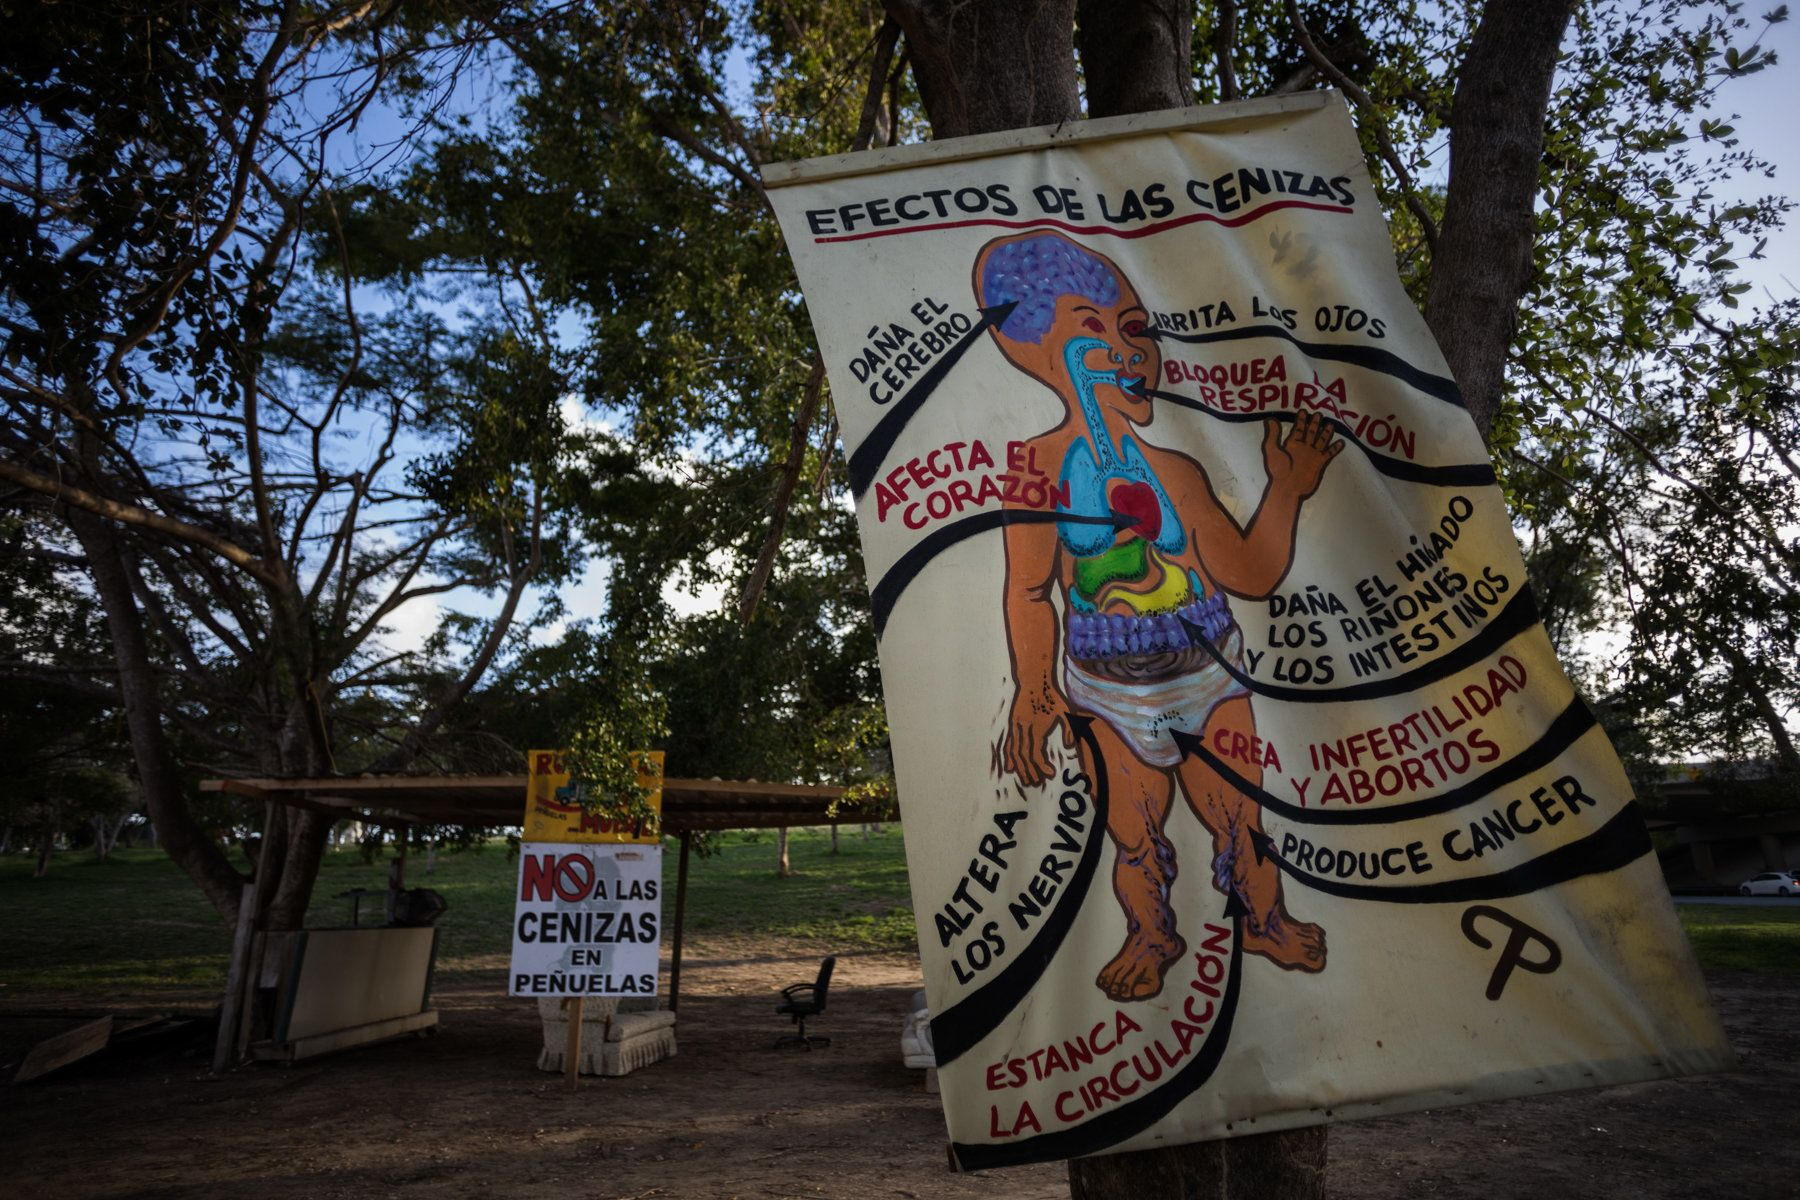 The sun sets on a protest camp in Peñuelas. A hand painted sign describes the effects that coal ash in the air and wat